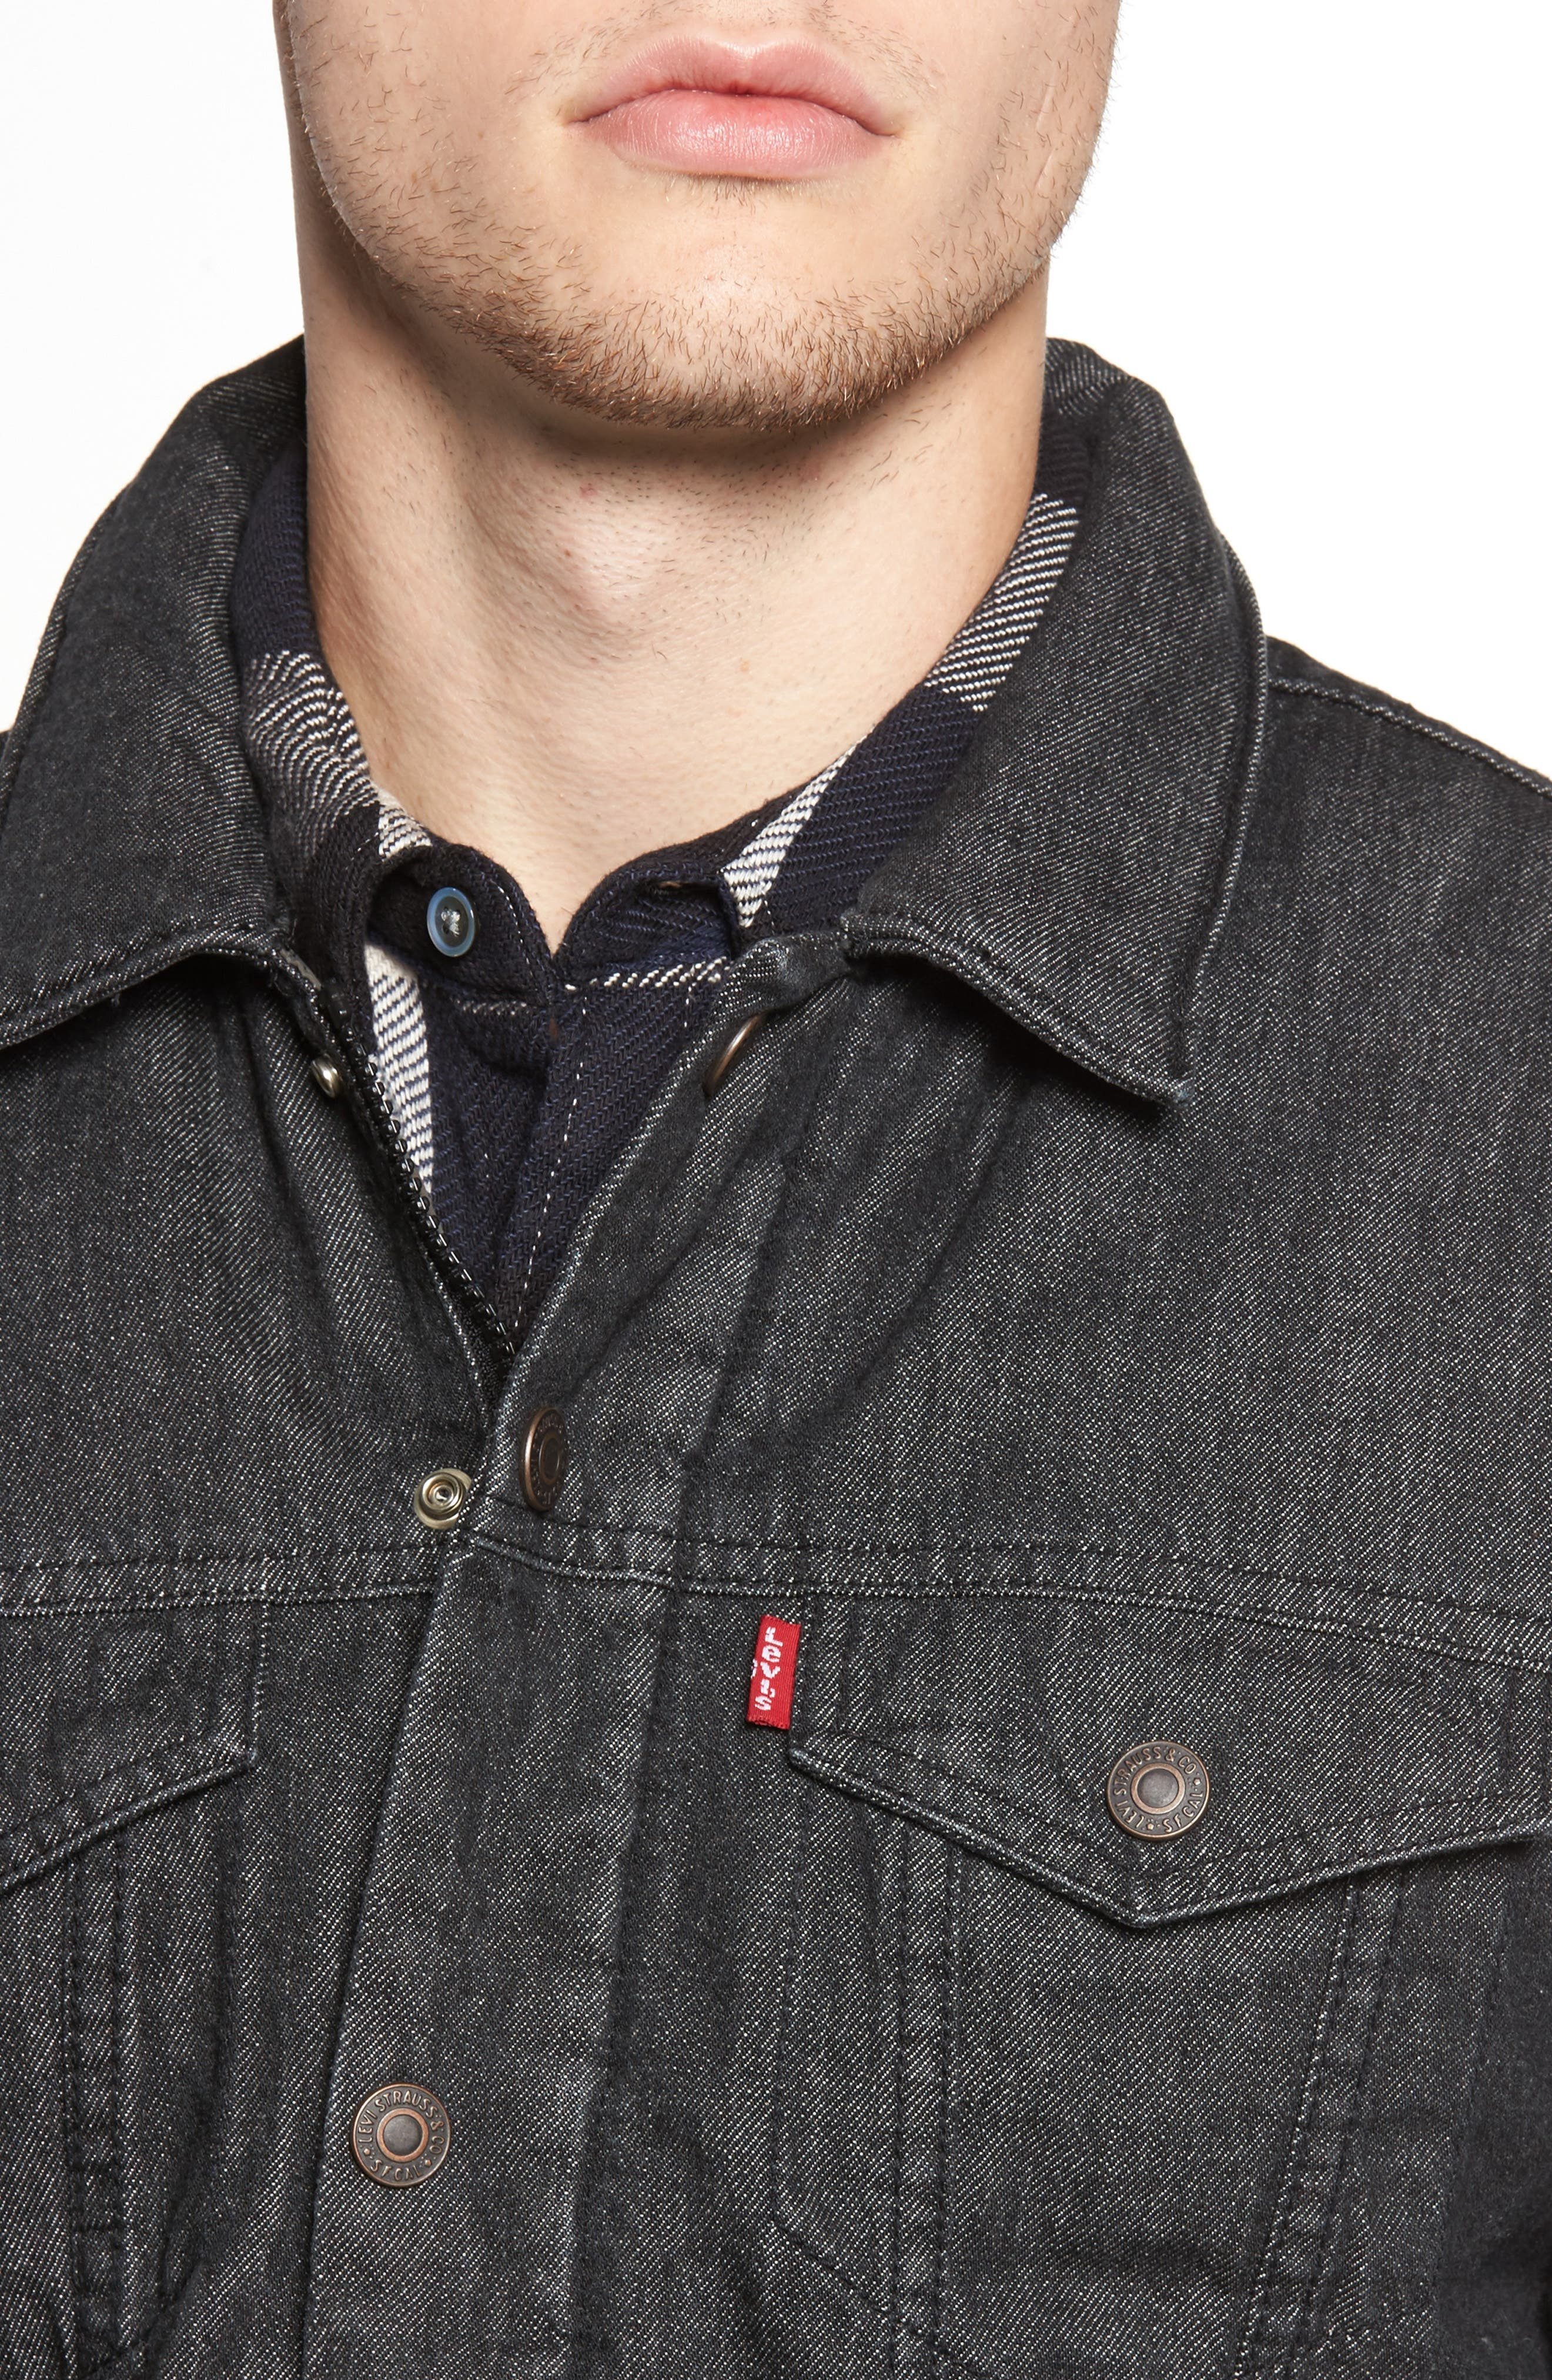 Down Insulated Trucker Jacket,                             Alternate thumbnail 4, color,                             Black